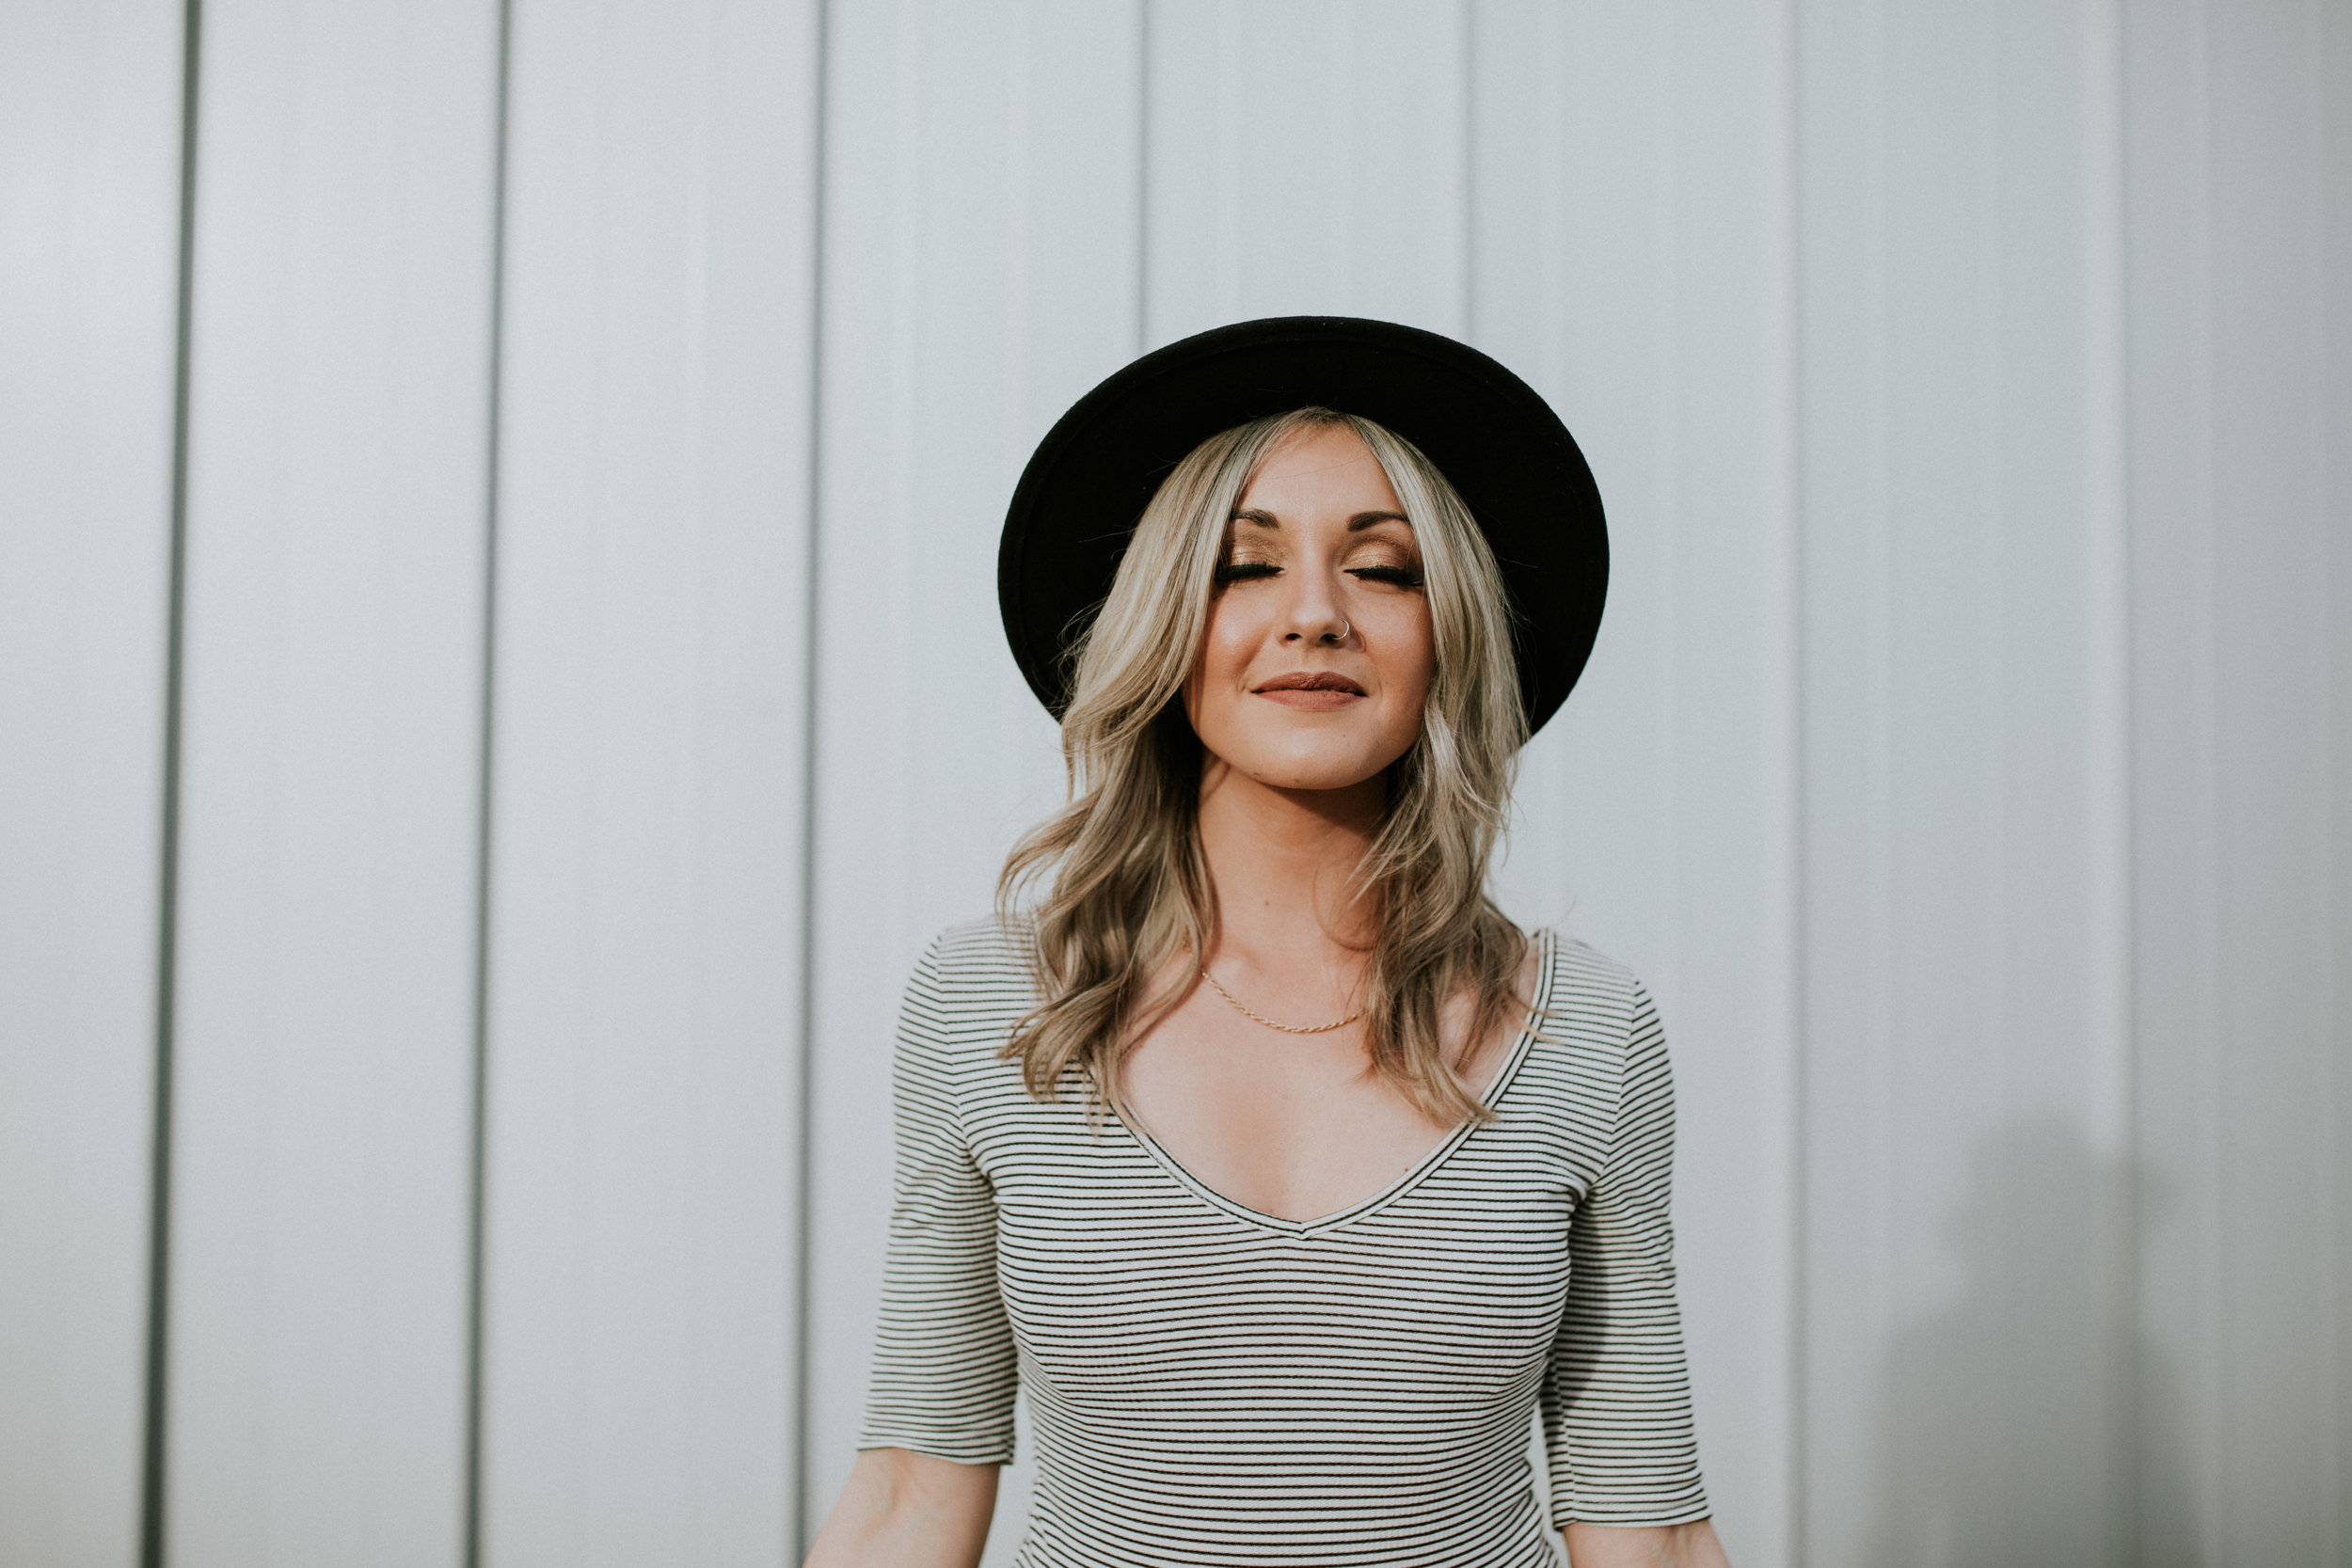 Chelle Morgan Vancouver blogger in striped shirt and hat looking at the sun